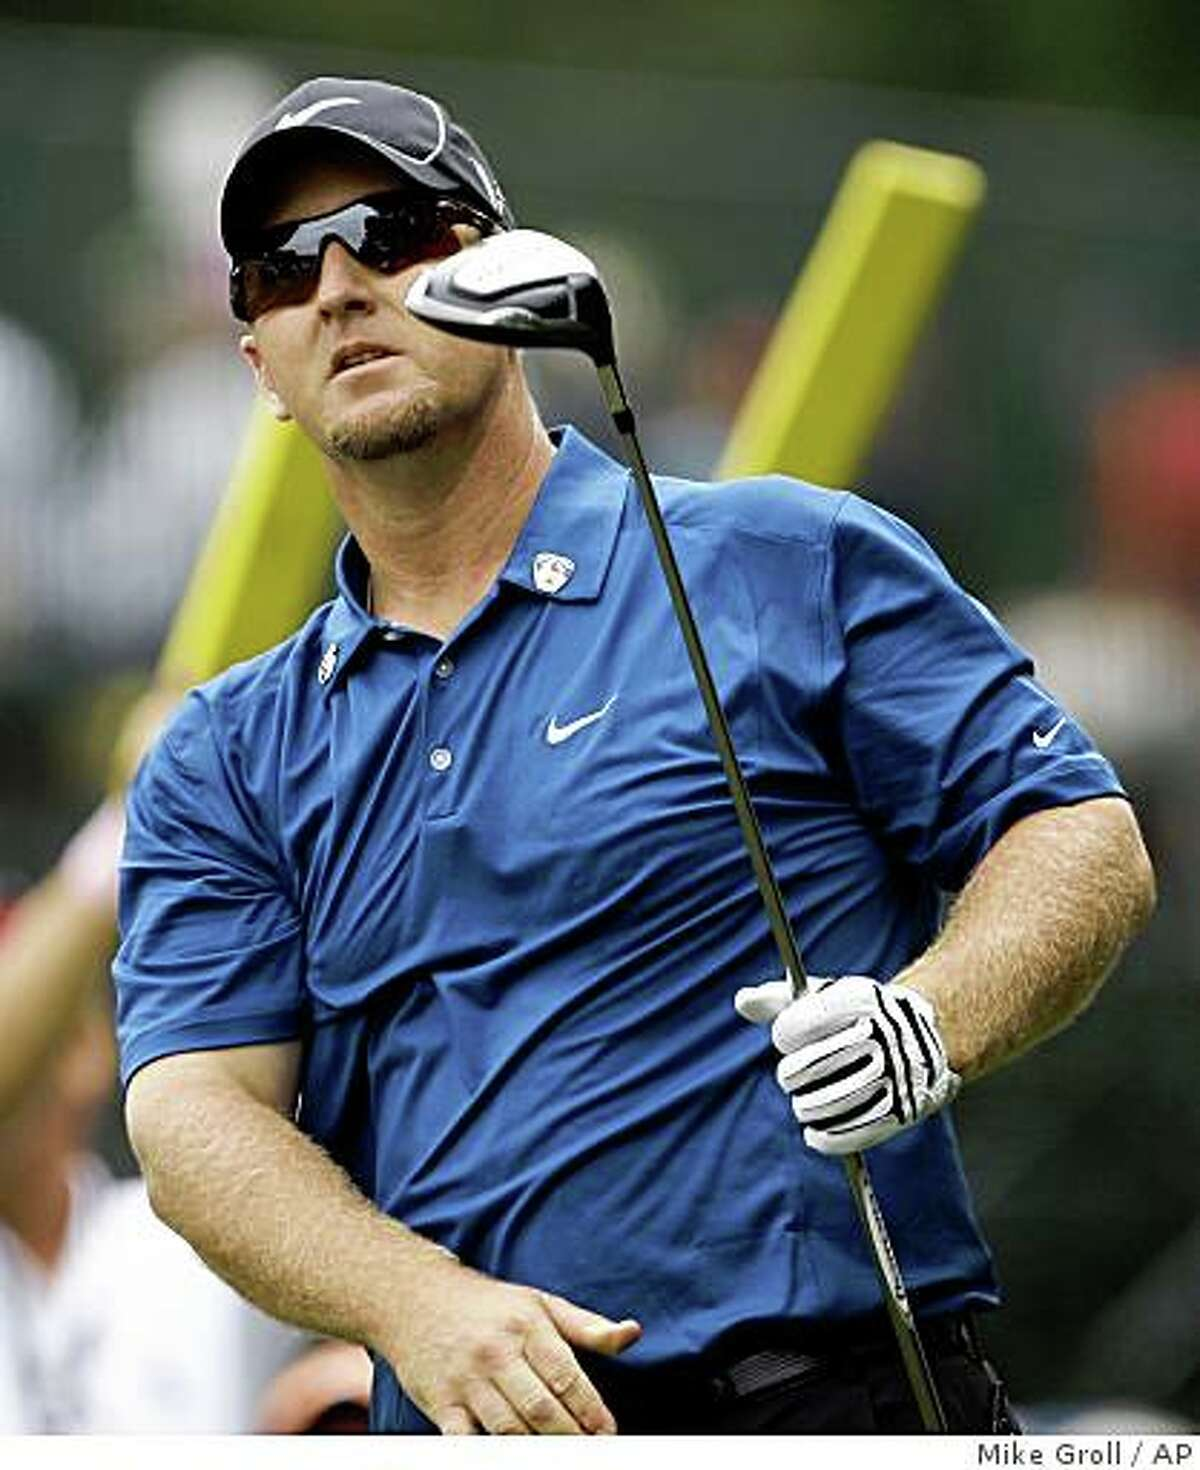 David Duval follows his drive on the 12th tee during the first round of the U.S. Open Golf Championship at Bethpage State Park's Black Course in Farmingdale, N.Y., Friday, June 19, 2009. (AP Photo/Mike Groll)